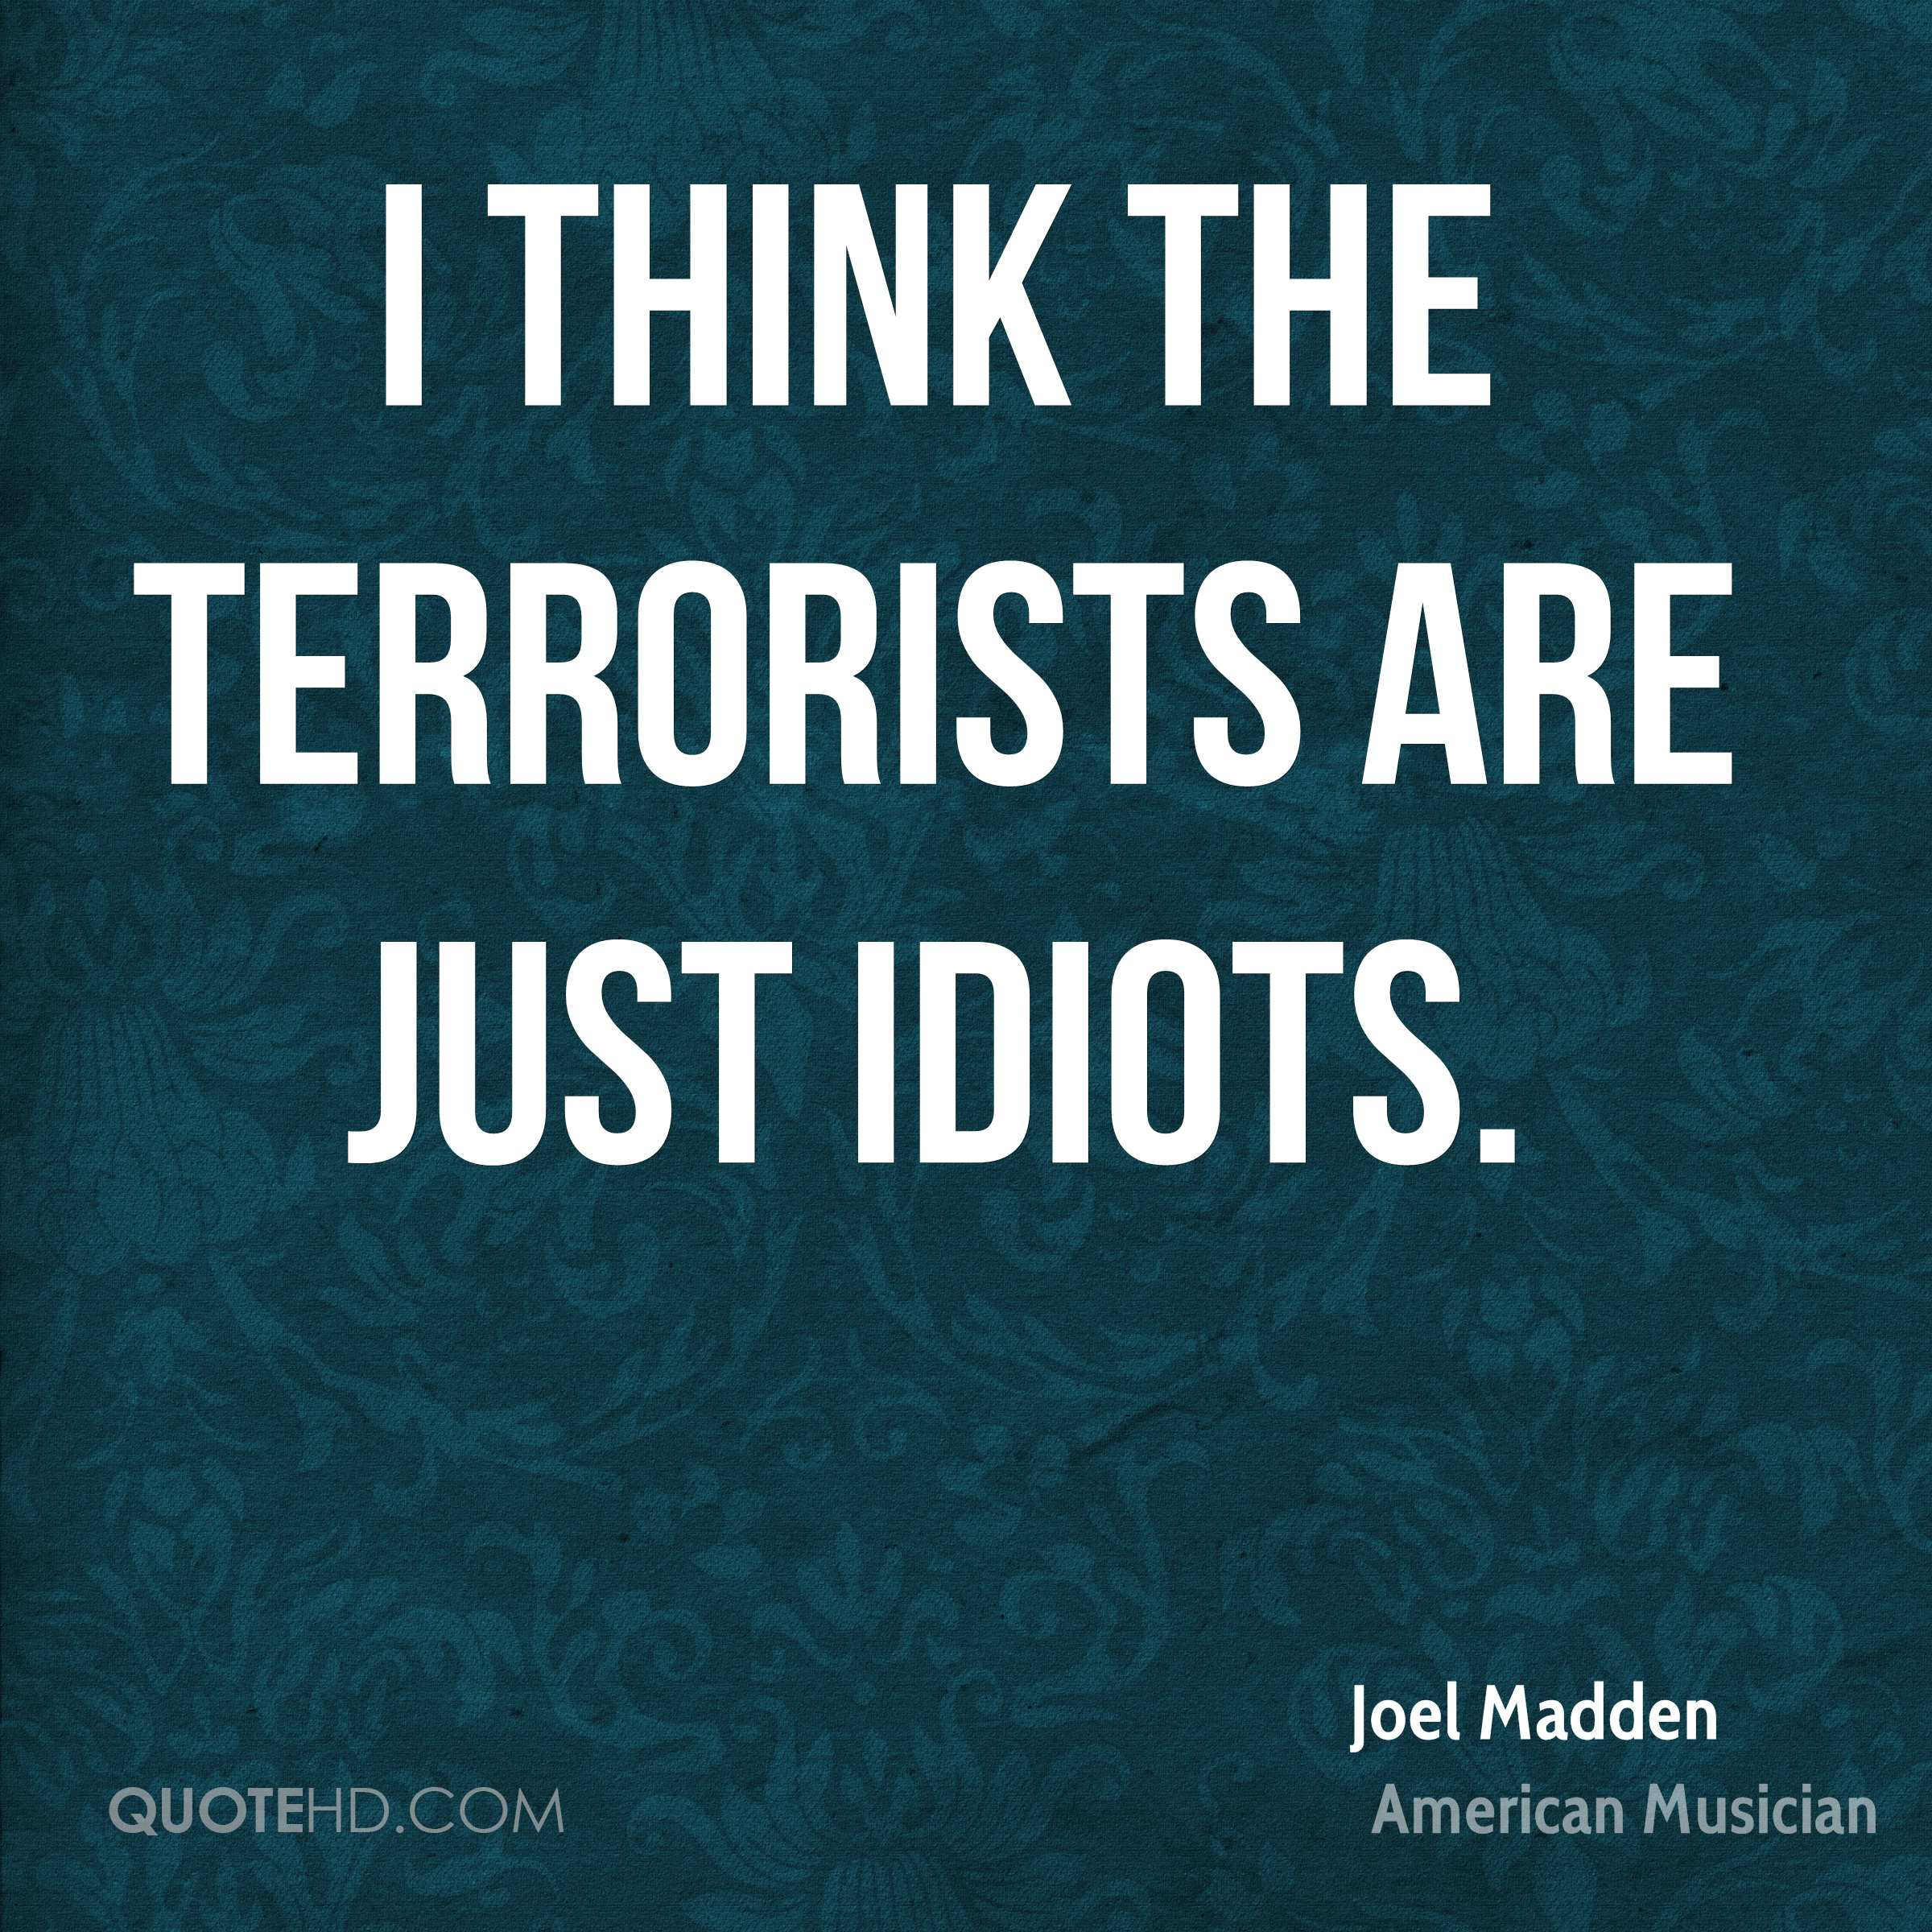 I think the terrorists are just idiots.